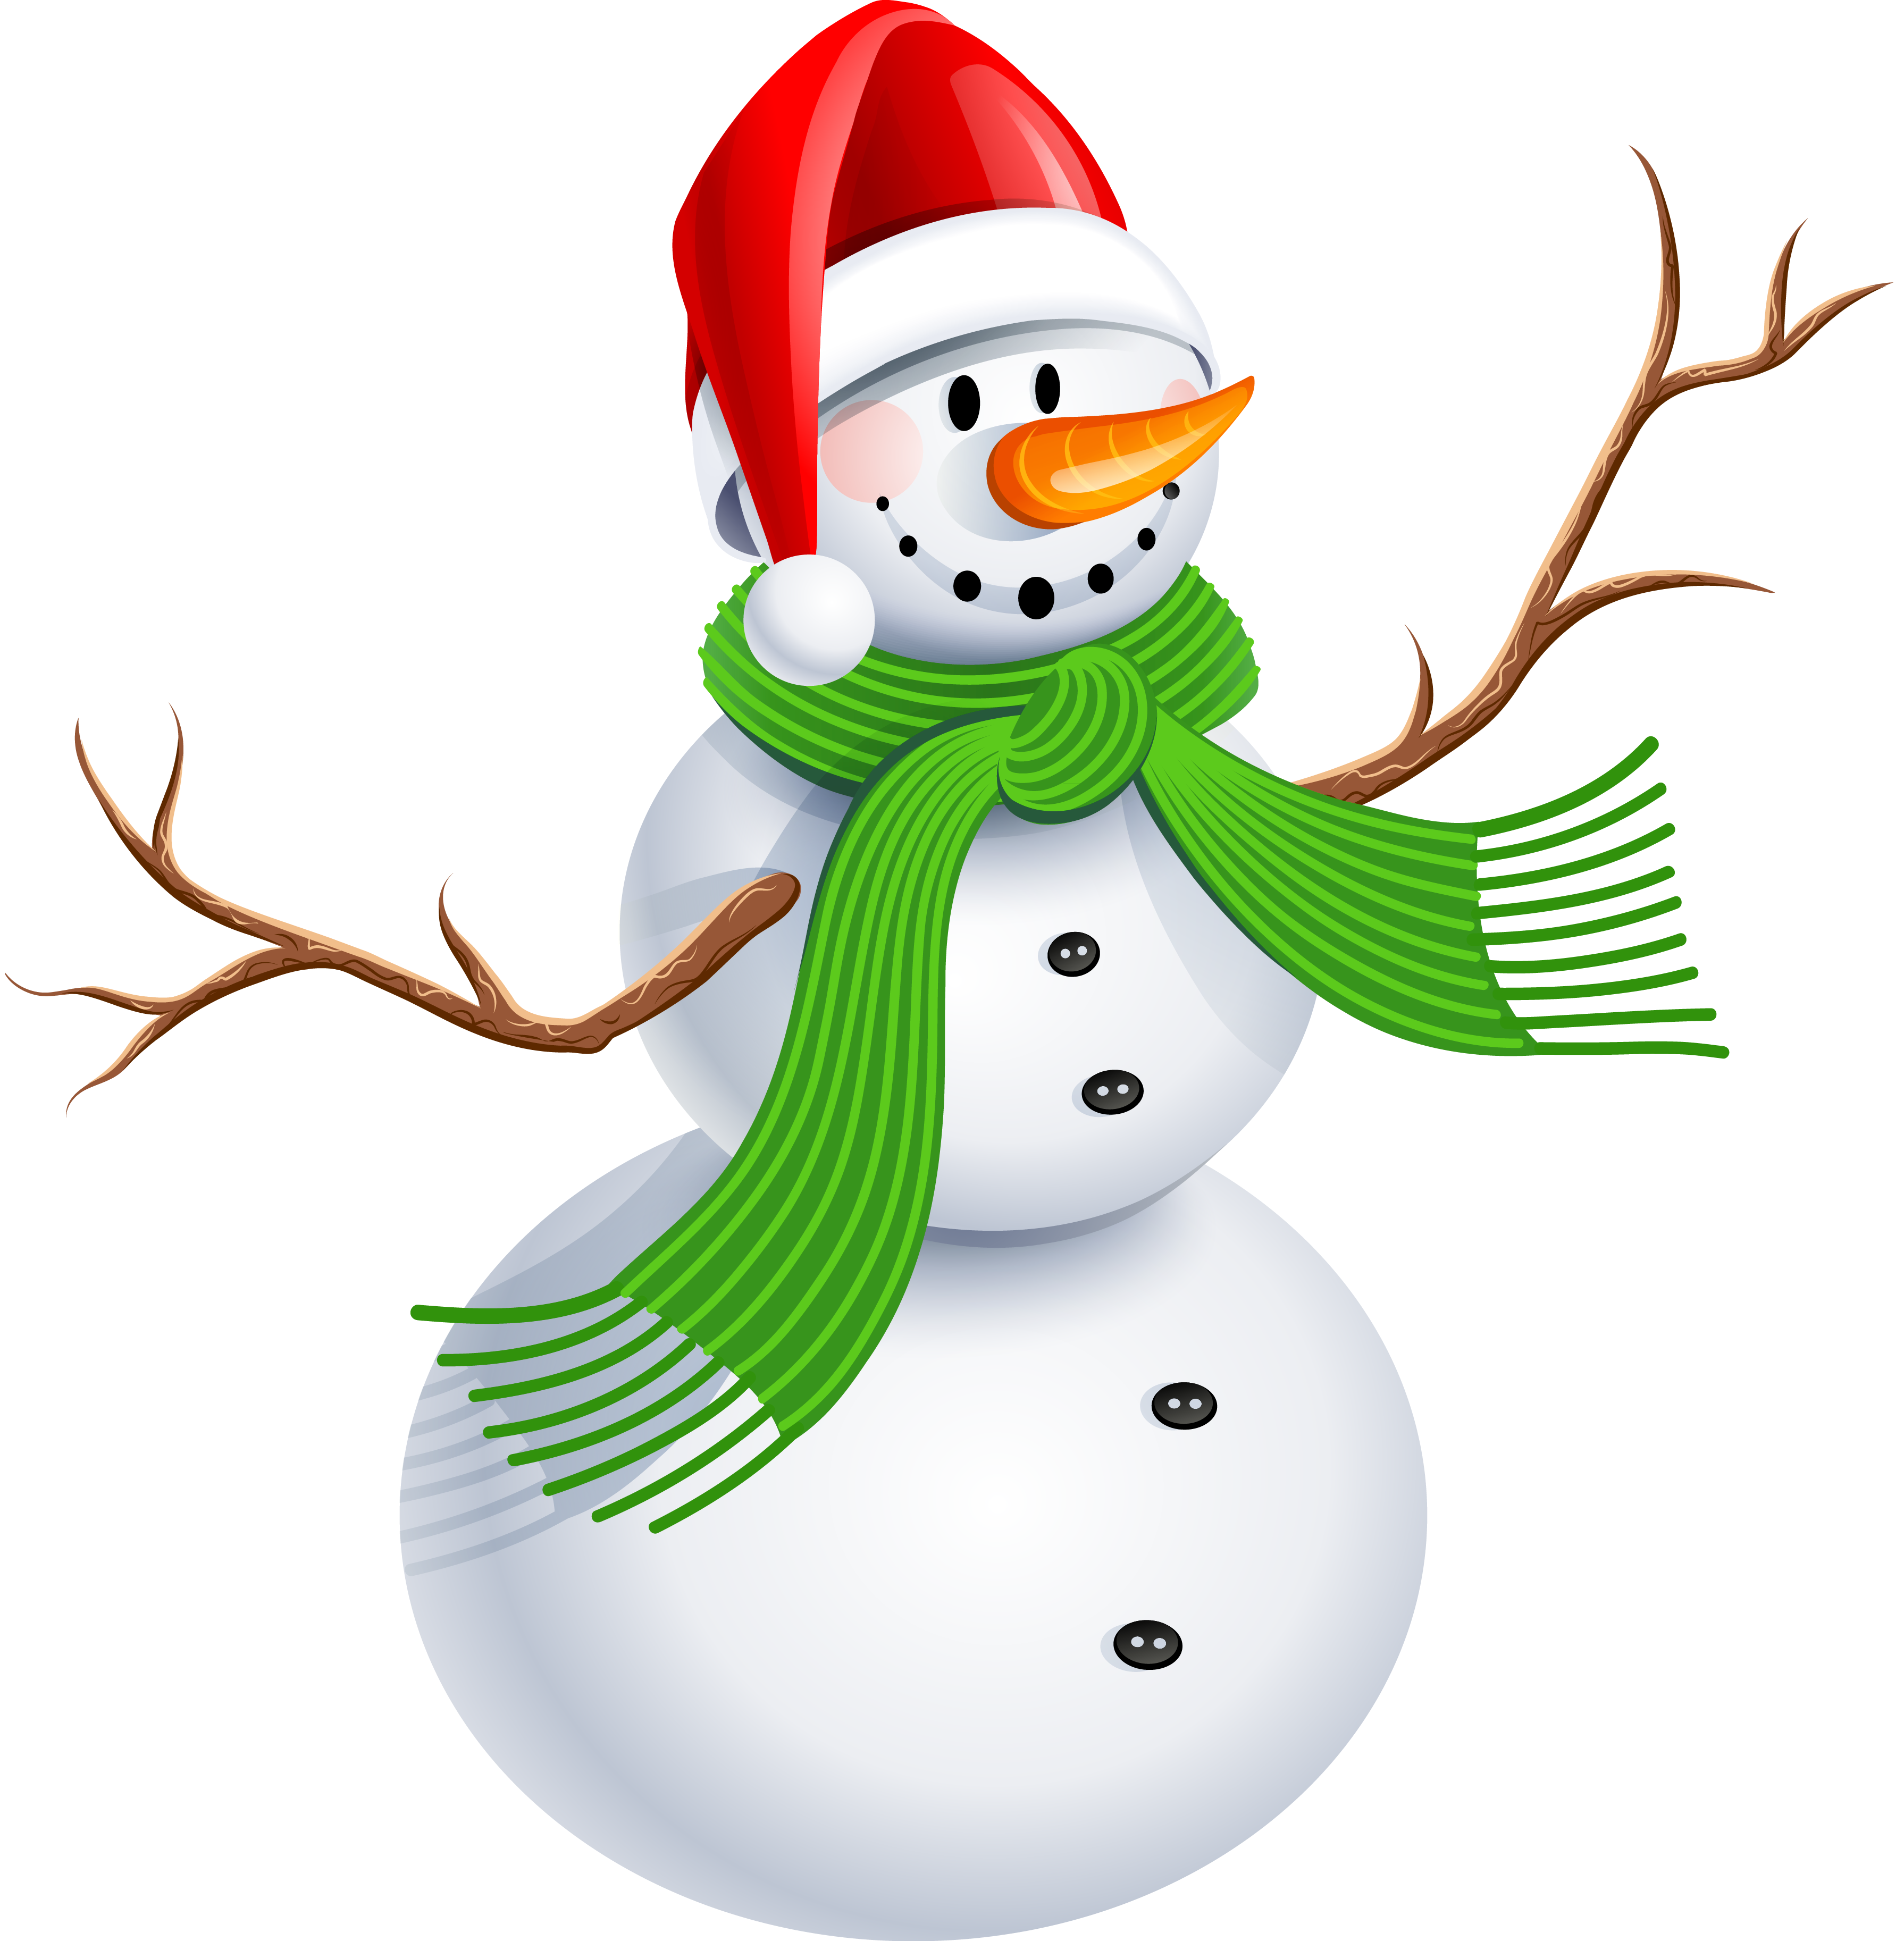 3581x3651 Snowman With Green Scarf Png Clipart Pictureu200b Gallery